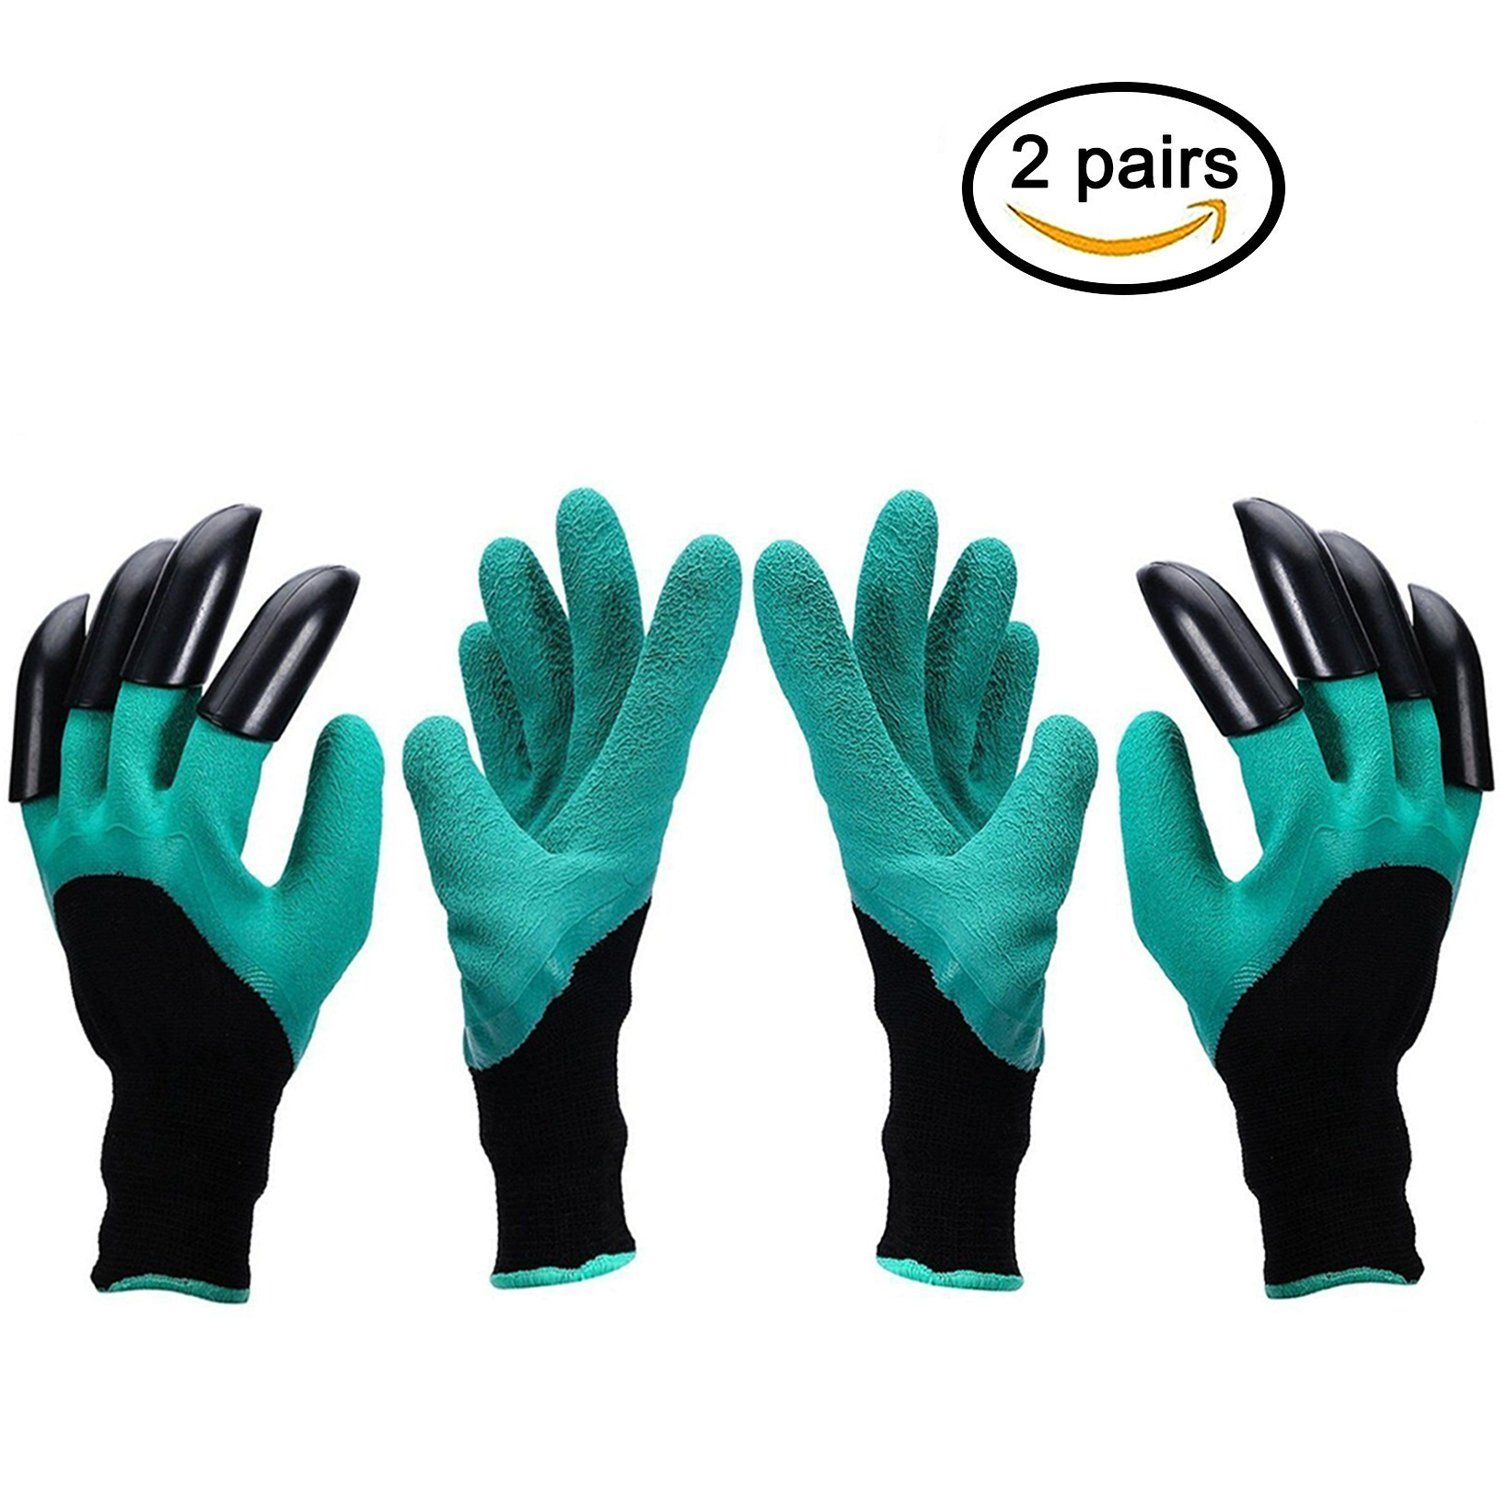 Garden Genie Gloves, SnowCinda 2 Pairs Gardening Gloves Left and Right Claws for Digging & Planting, Left Right Handy Friendly